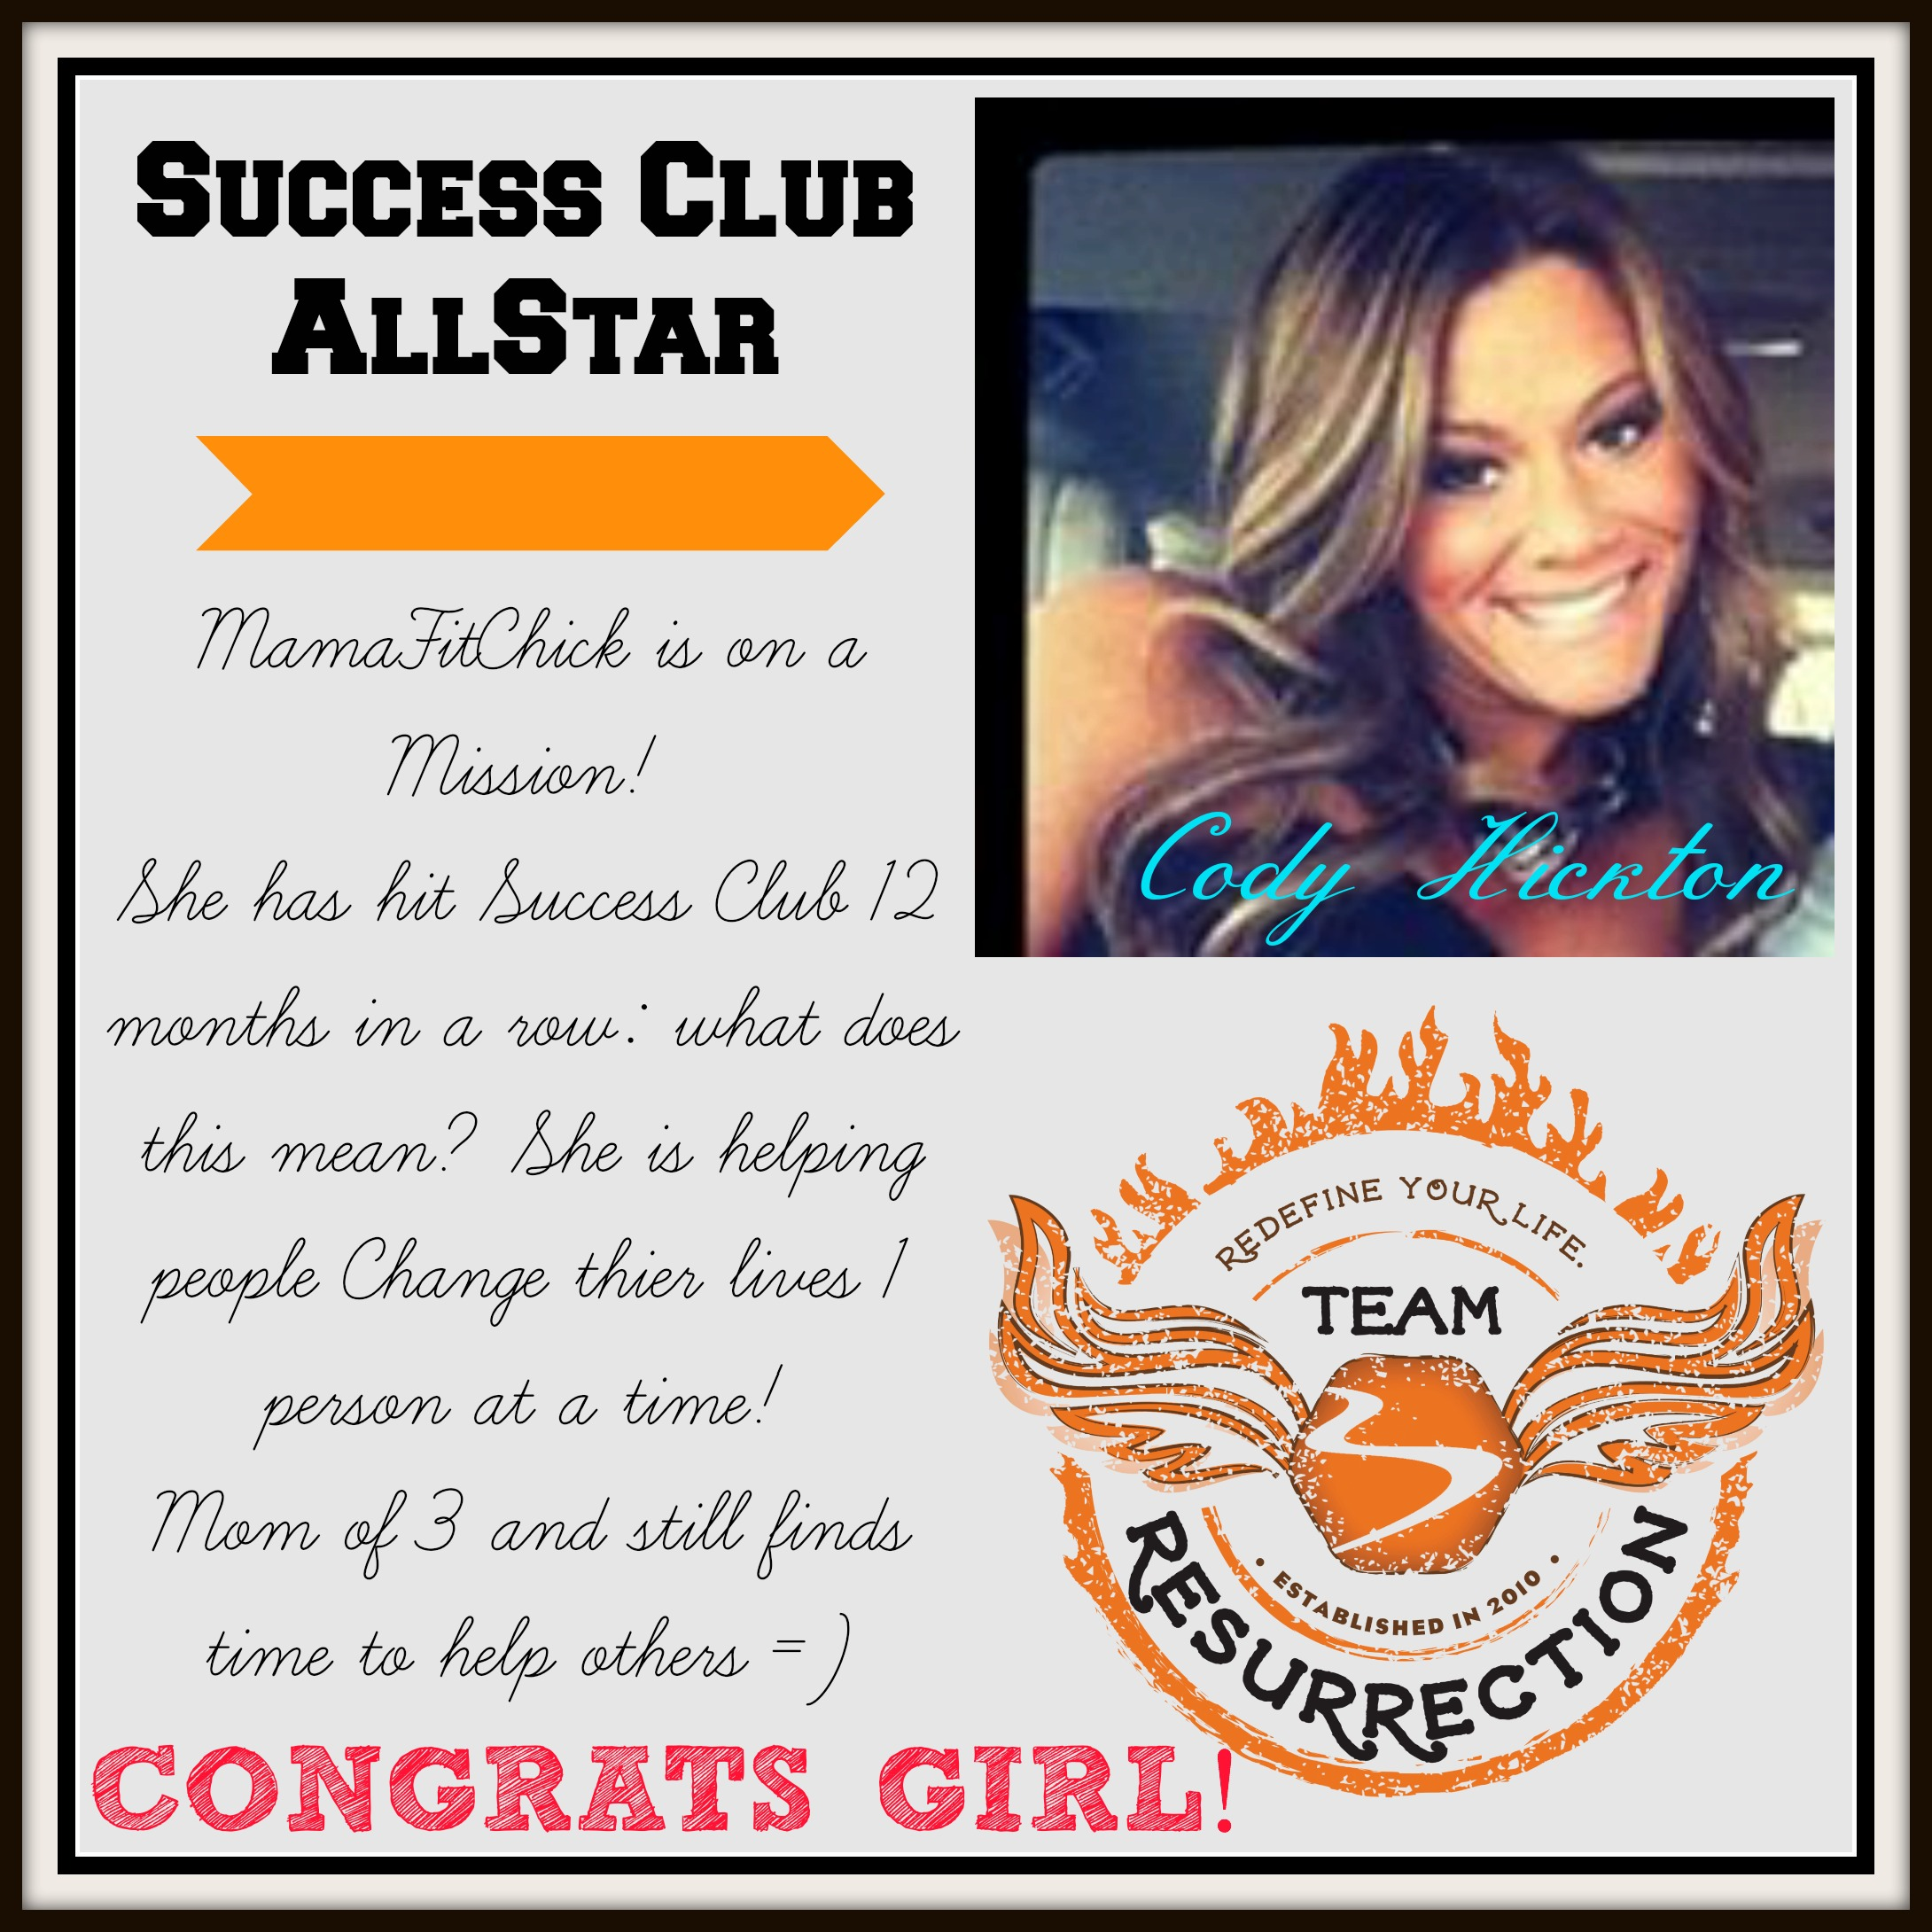 Beachbody business cards unlimitedgamers cody h mama fit chick is officially a sc all star nikki colourmoves